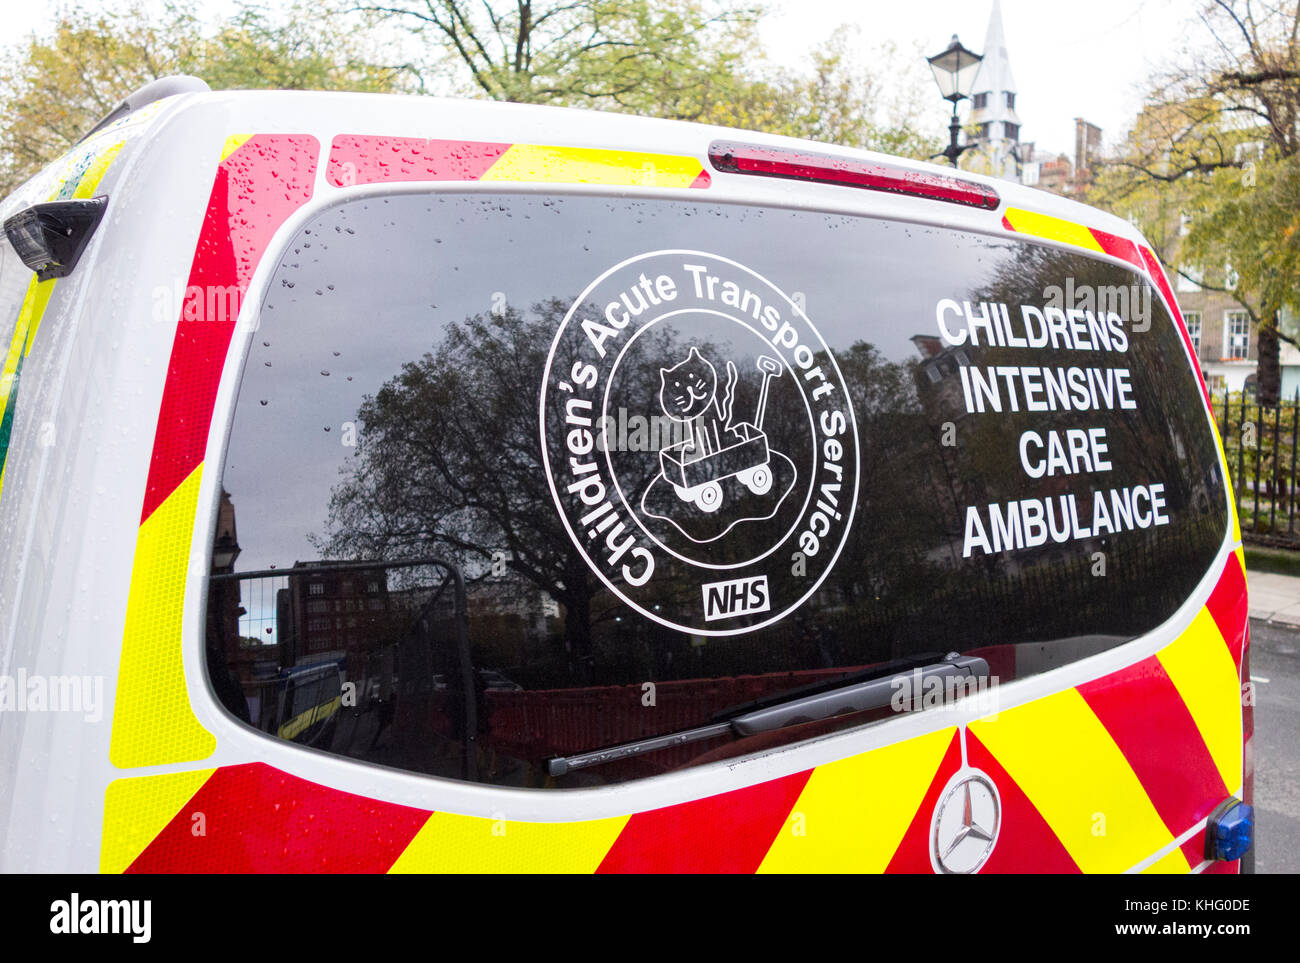 Childrens Intensive Care ambulance parked near the world famous Great Ormond Street Hospital, London, UK - Stock Image